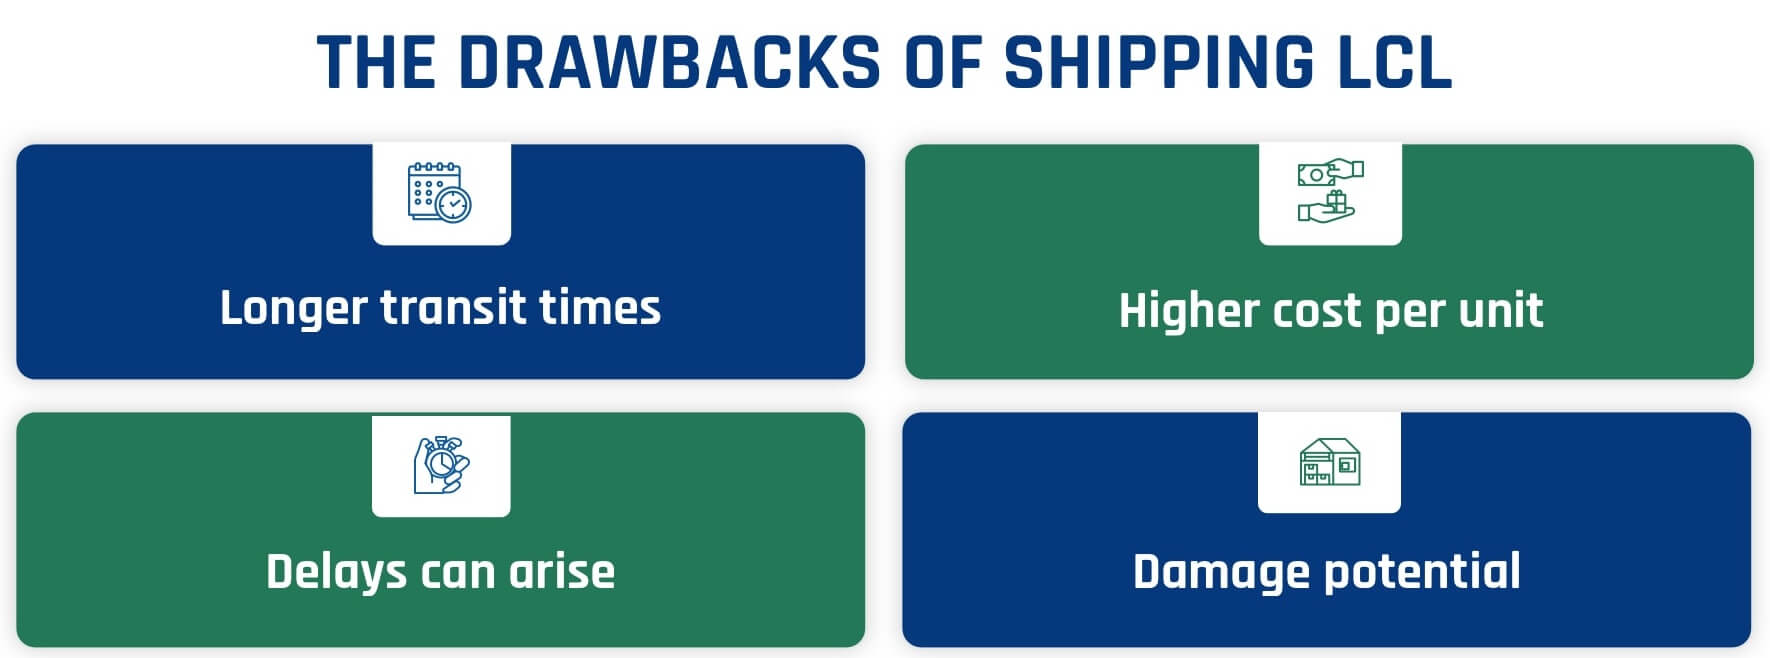 Disadvantages of LCL Container Shipping